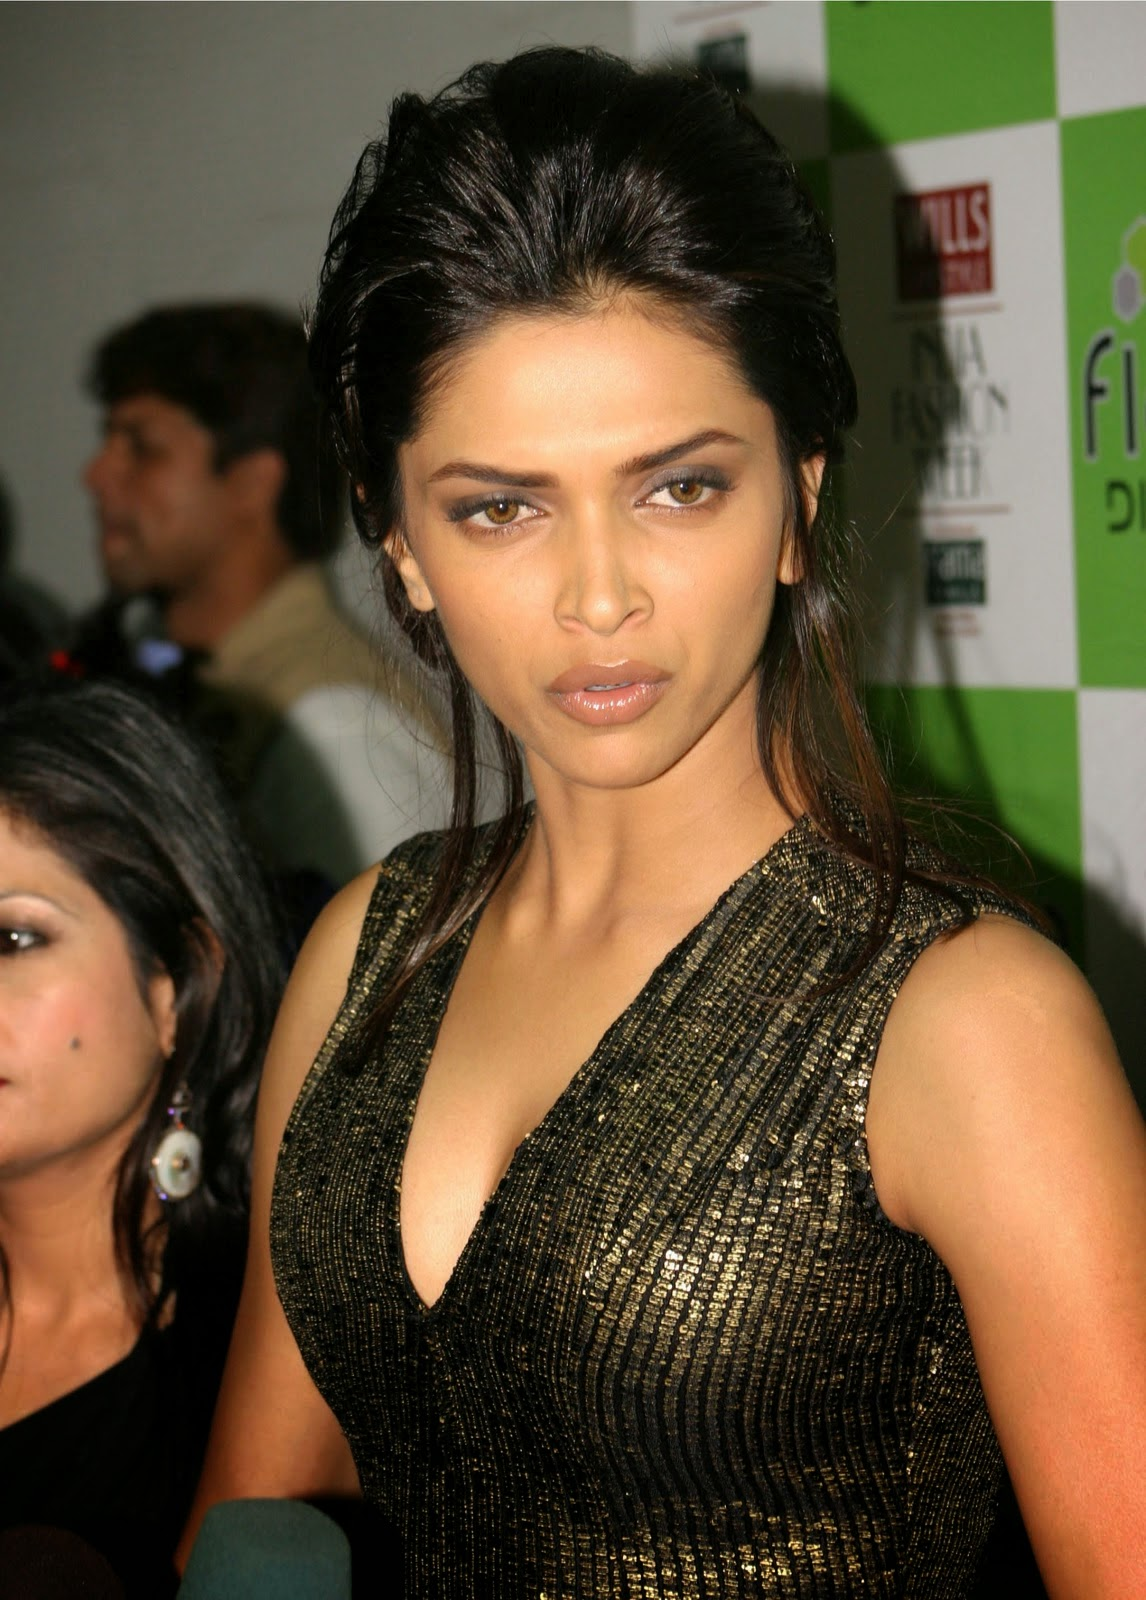 Deepika Padukone in Glittery Black Dress